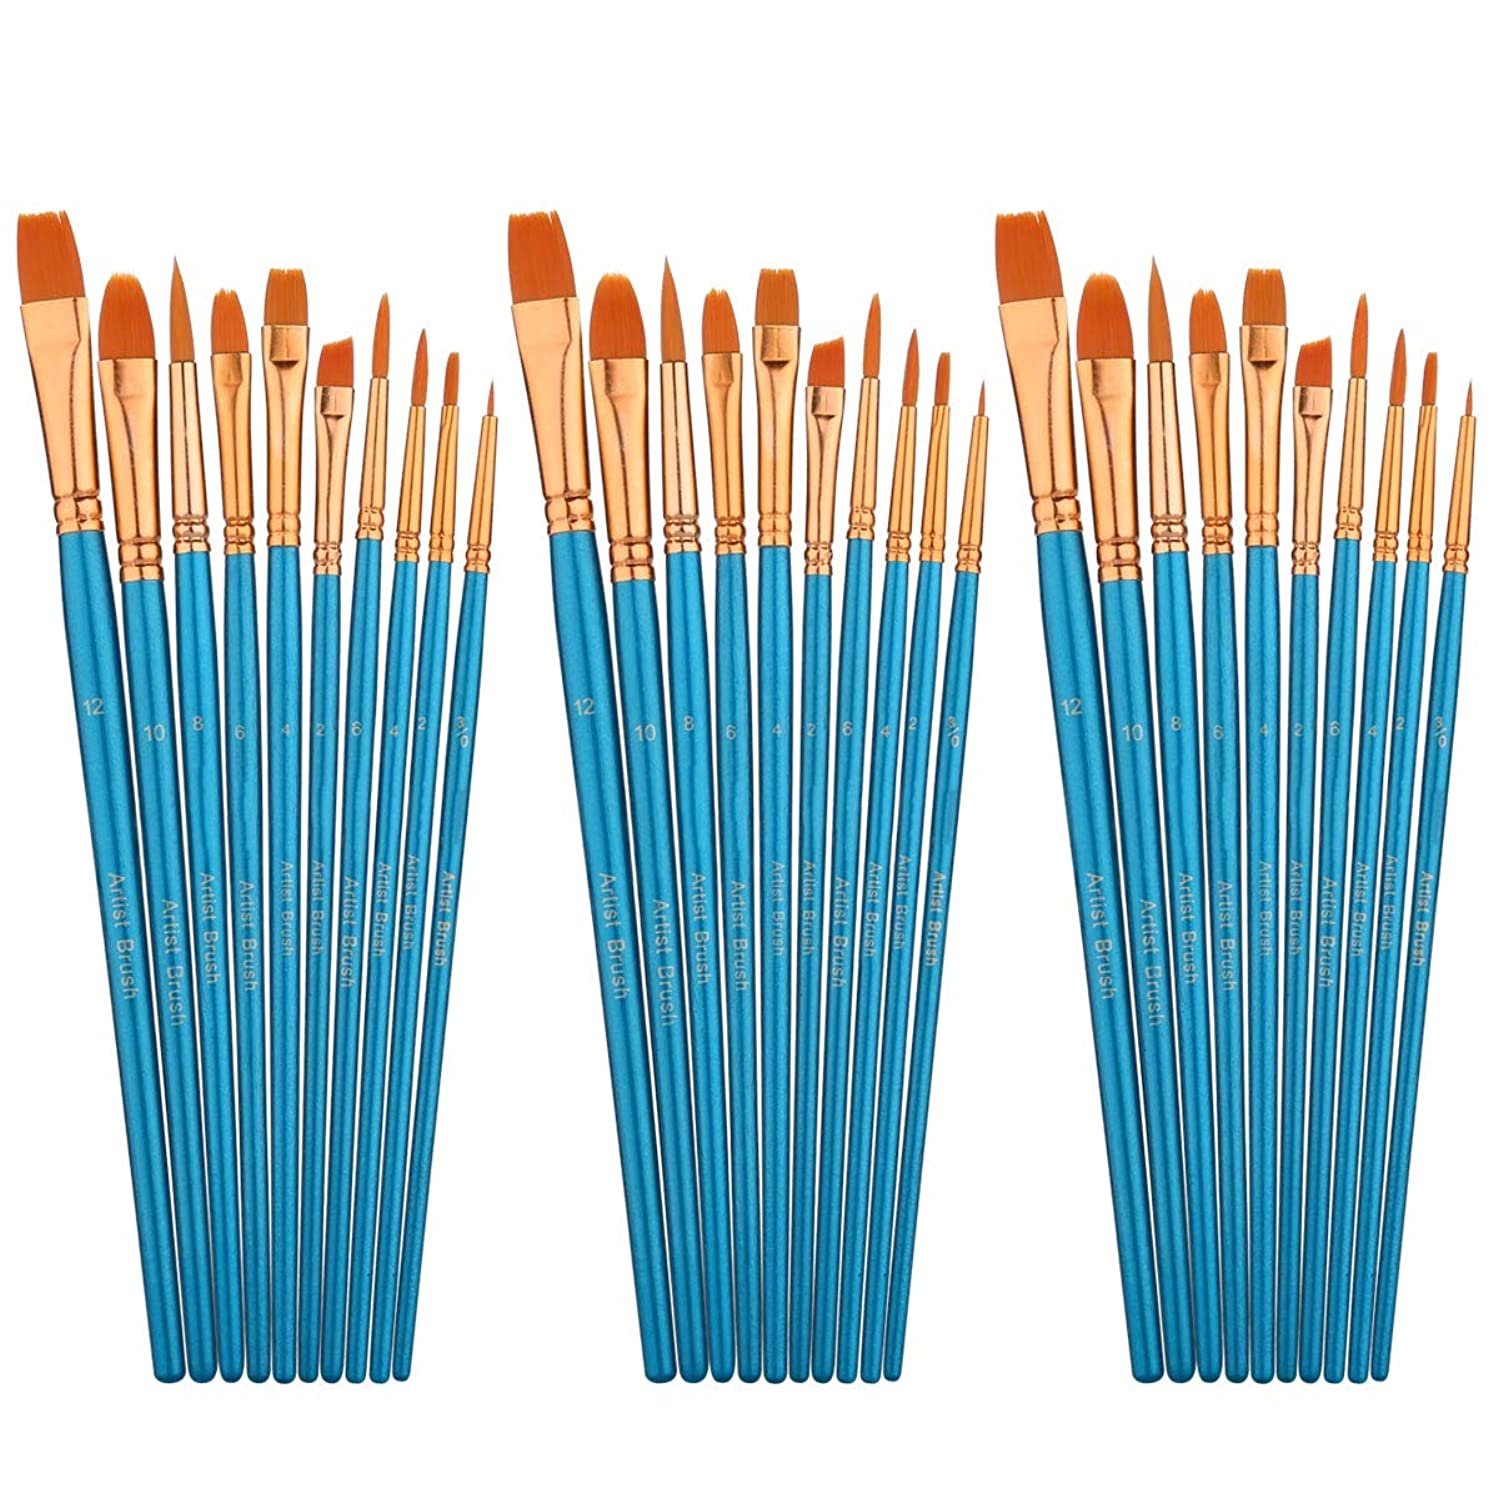 30 pcs Artist Oil Watercolor Paint Brush Set,10 Different Shapes & Sizes Professional Nylon Hair Brushes with Bag for Acrylic Painting